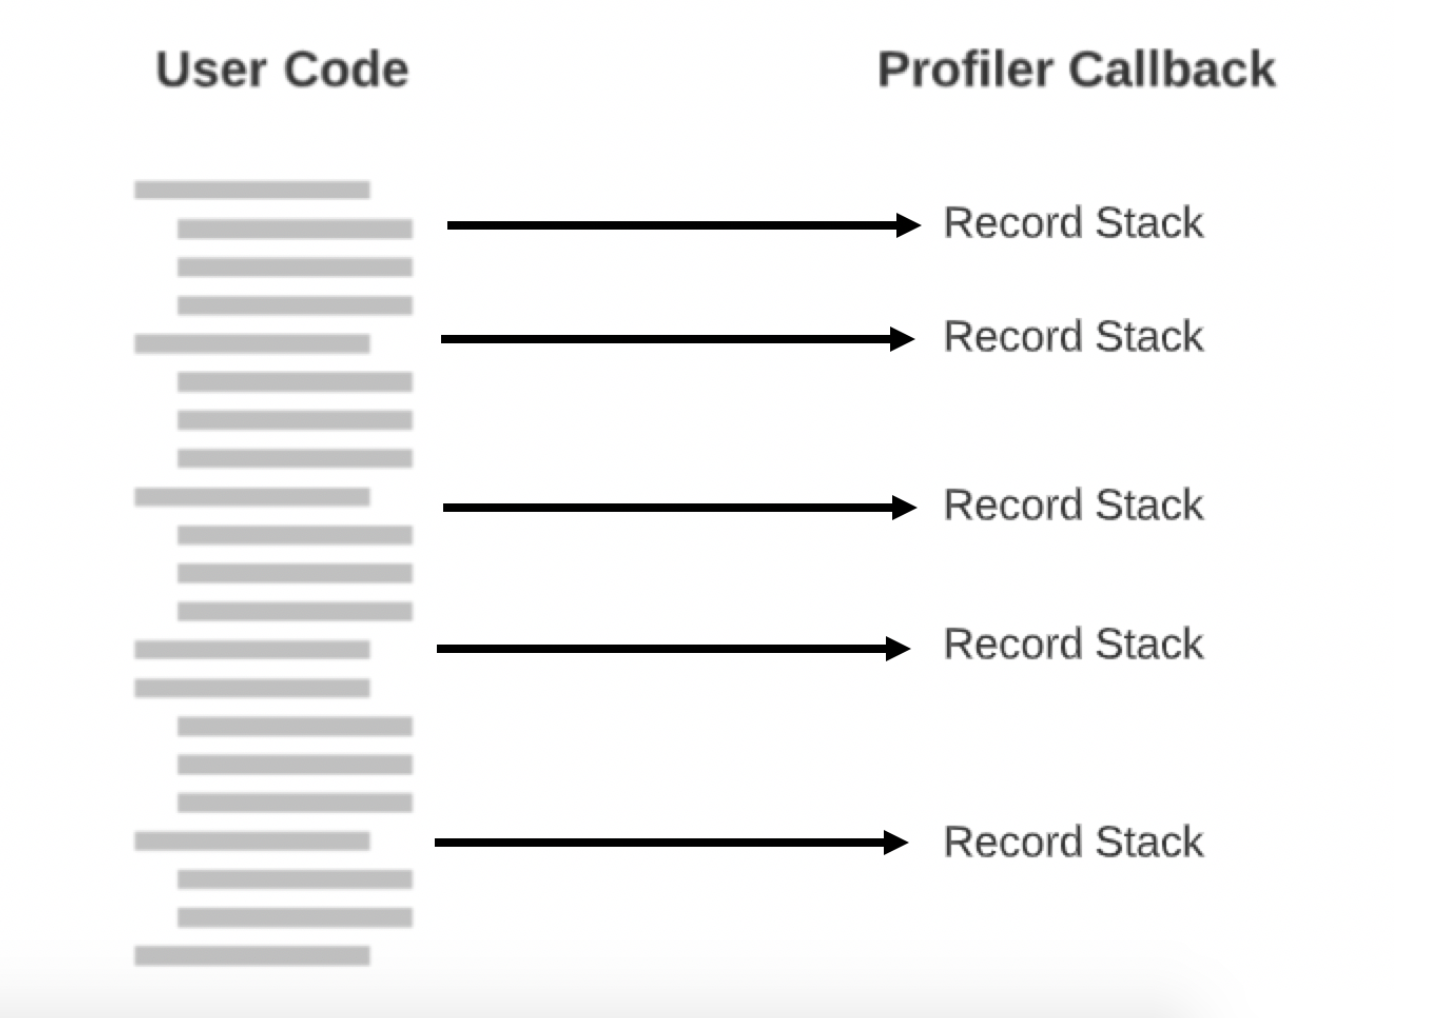 a diagram illustrating how a callback records the stack